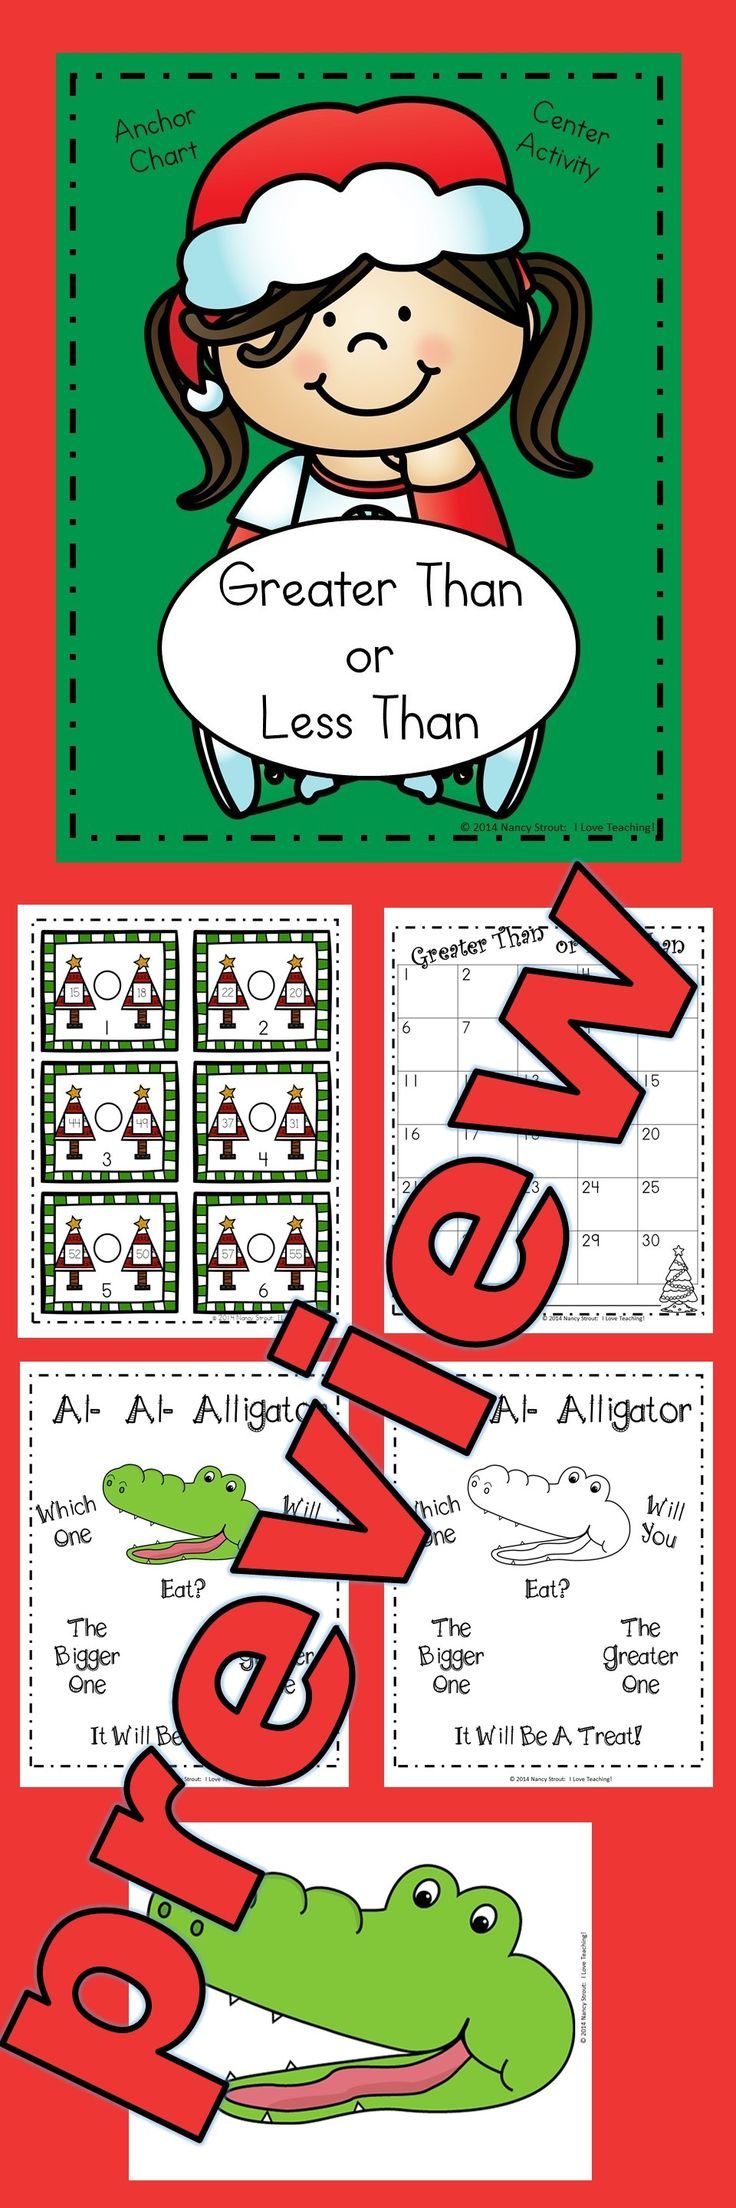 Place Value Anchor Chart and Christmas Task Cards! This unit is 25 pages long. Introduce Place Value with a fun song and then build an anchor chart together. Then follow up your lesson with task cards that they can do independently to practice this new skill. It includes: 60 Task Cards 2 Response Sheets A Place Value Song A Place Value Anchor Chart to Build With Your Class